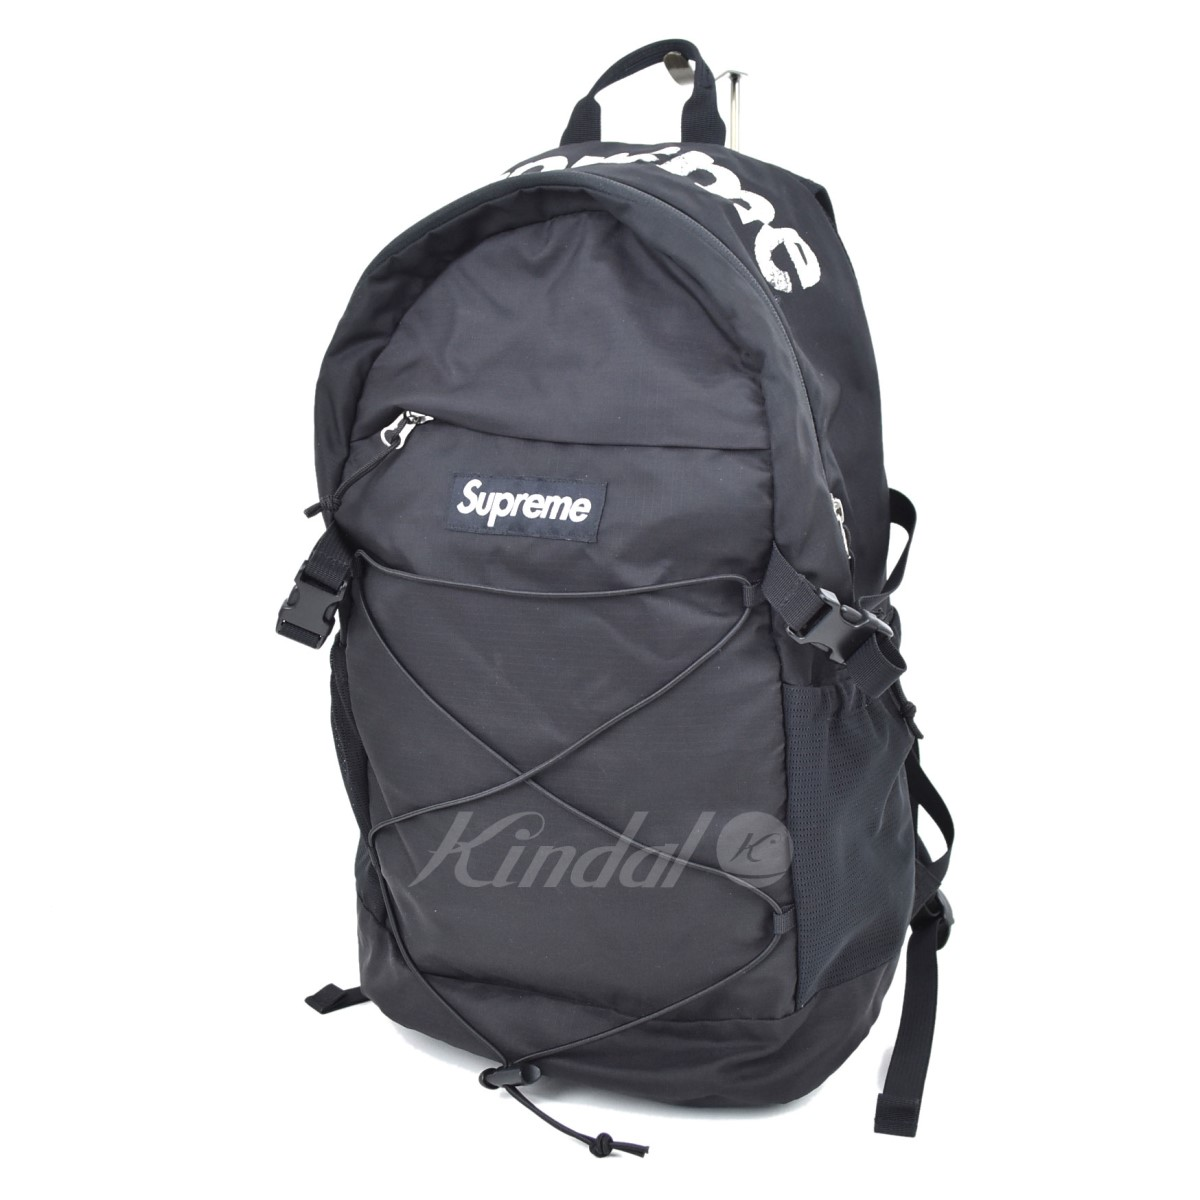 【中古】SUPREME 16SS TONAL BACK PACK 【送料無料】 【288777】 【KIND1551】